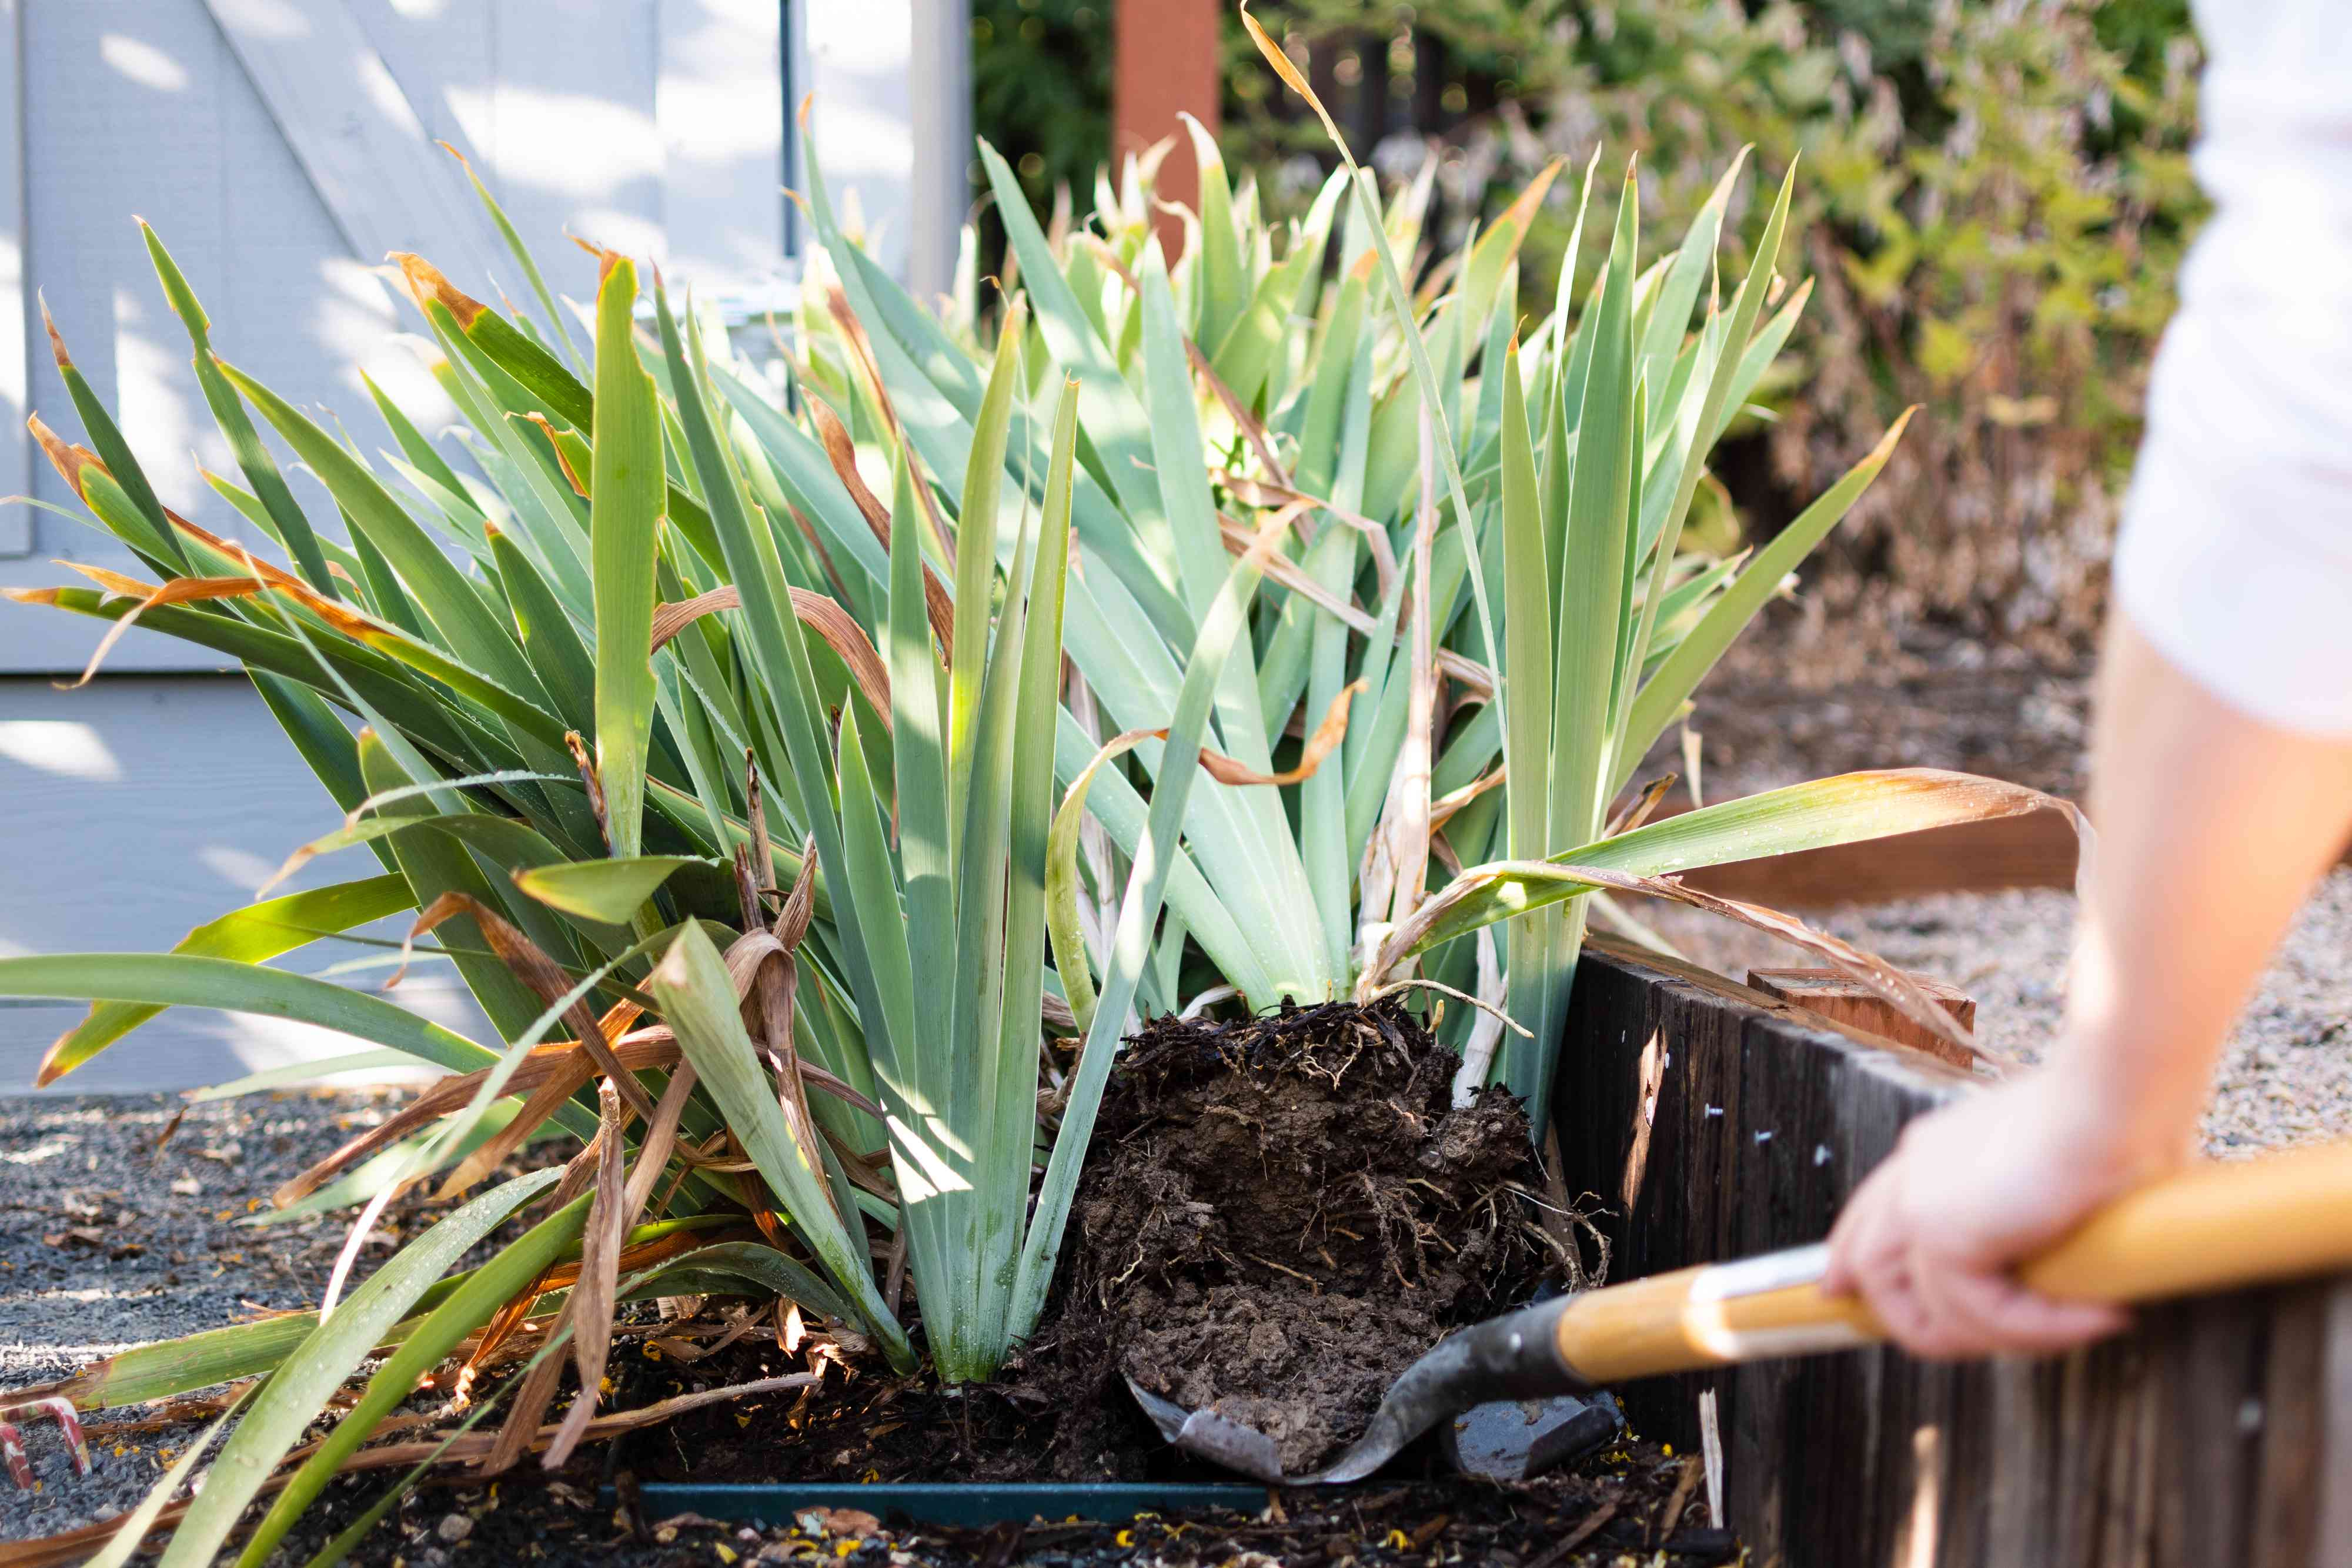 Garden shovel digging up clumps of bearded iris plants with clumps